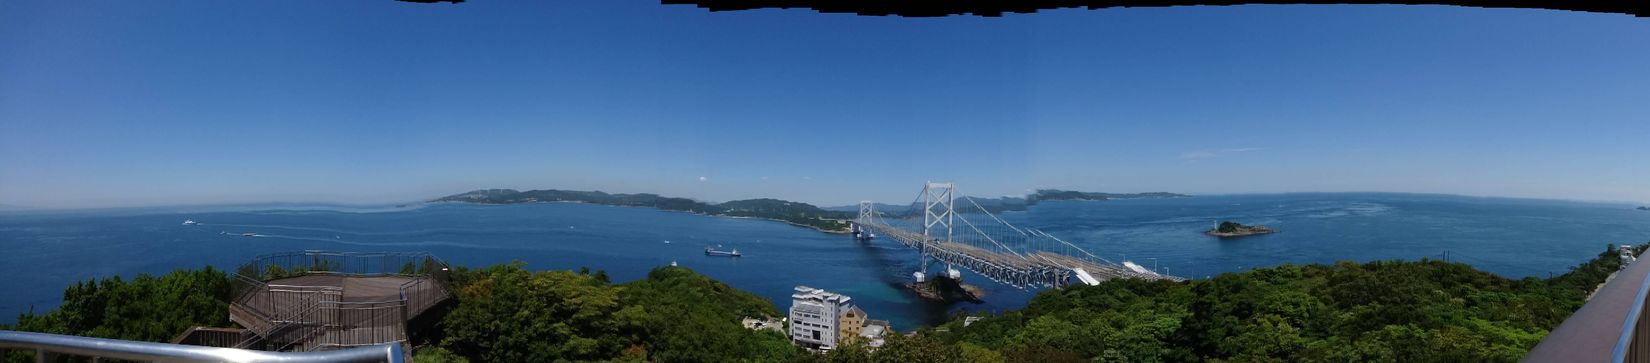 My Year My View Failed Photo Panorama Panoramashot パノラマ撮影 失敗例 鳴門海峡大橋 鳴門海峡 Seascape Sea And Sky Landscape Tokushima Travel Photography From My Point Of View 徳島 鳴門 旅写真 June 2016